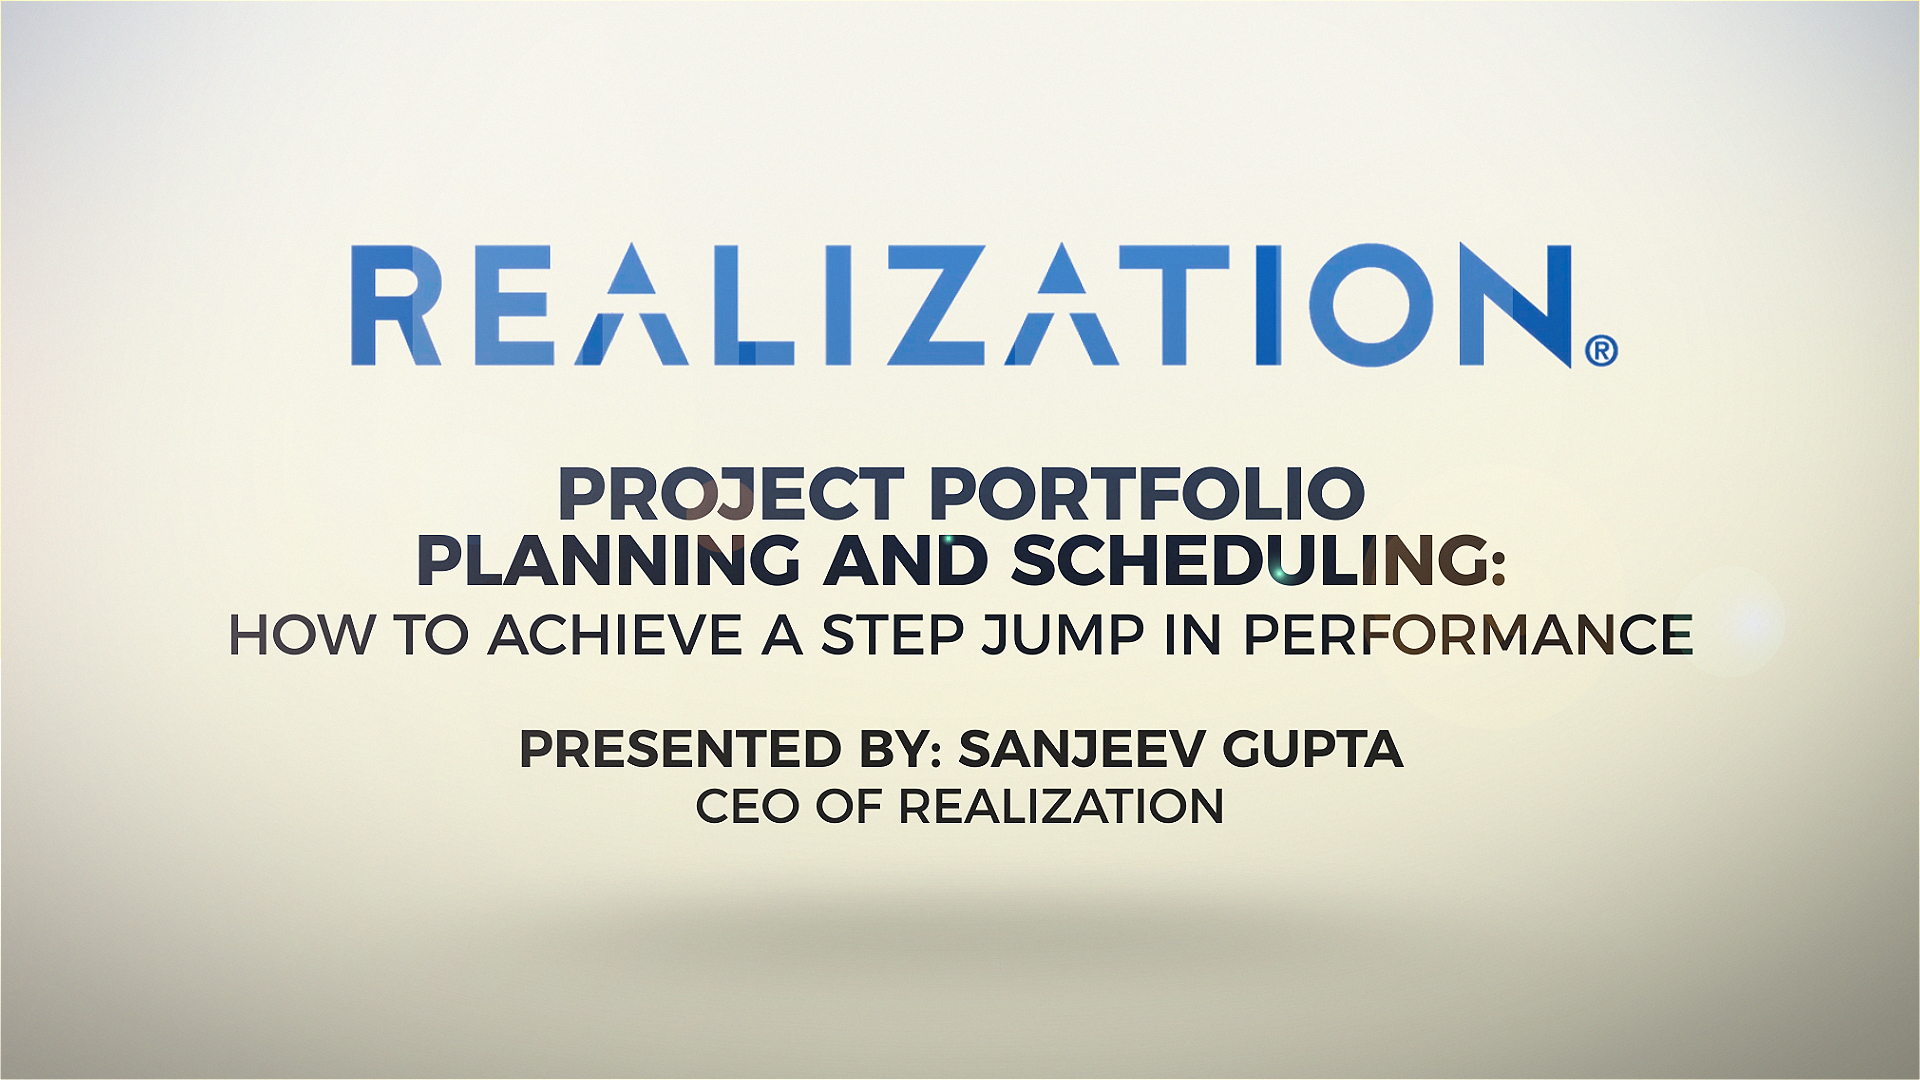 [Webinar] Project Portfolio Planning and Scheduling: How to Achieve a Step Jump in Performance Parts 2 & 3